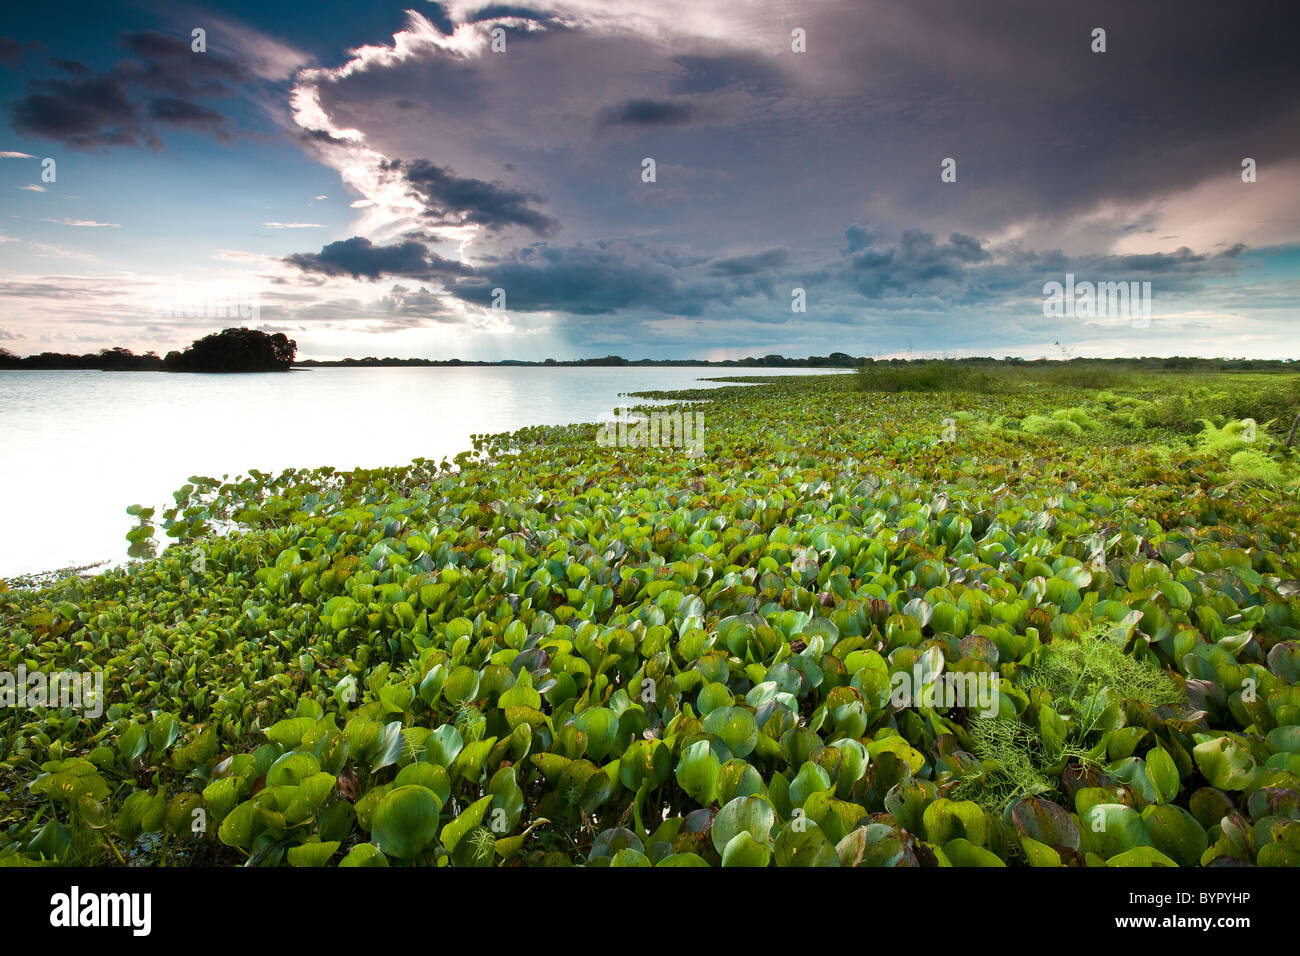 At the lakeside of Refugio de vida Silvestre Cienaga de las Macanas Nature Reserve, in Herrera province, Republic Stock Foto